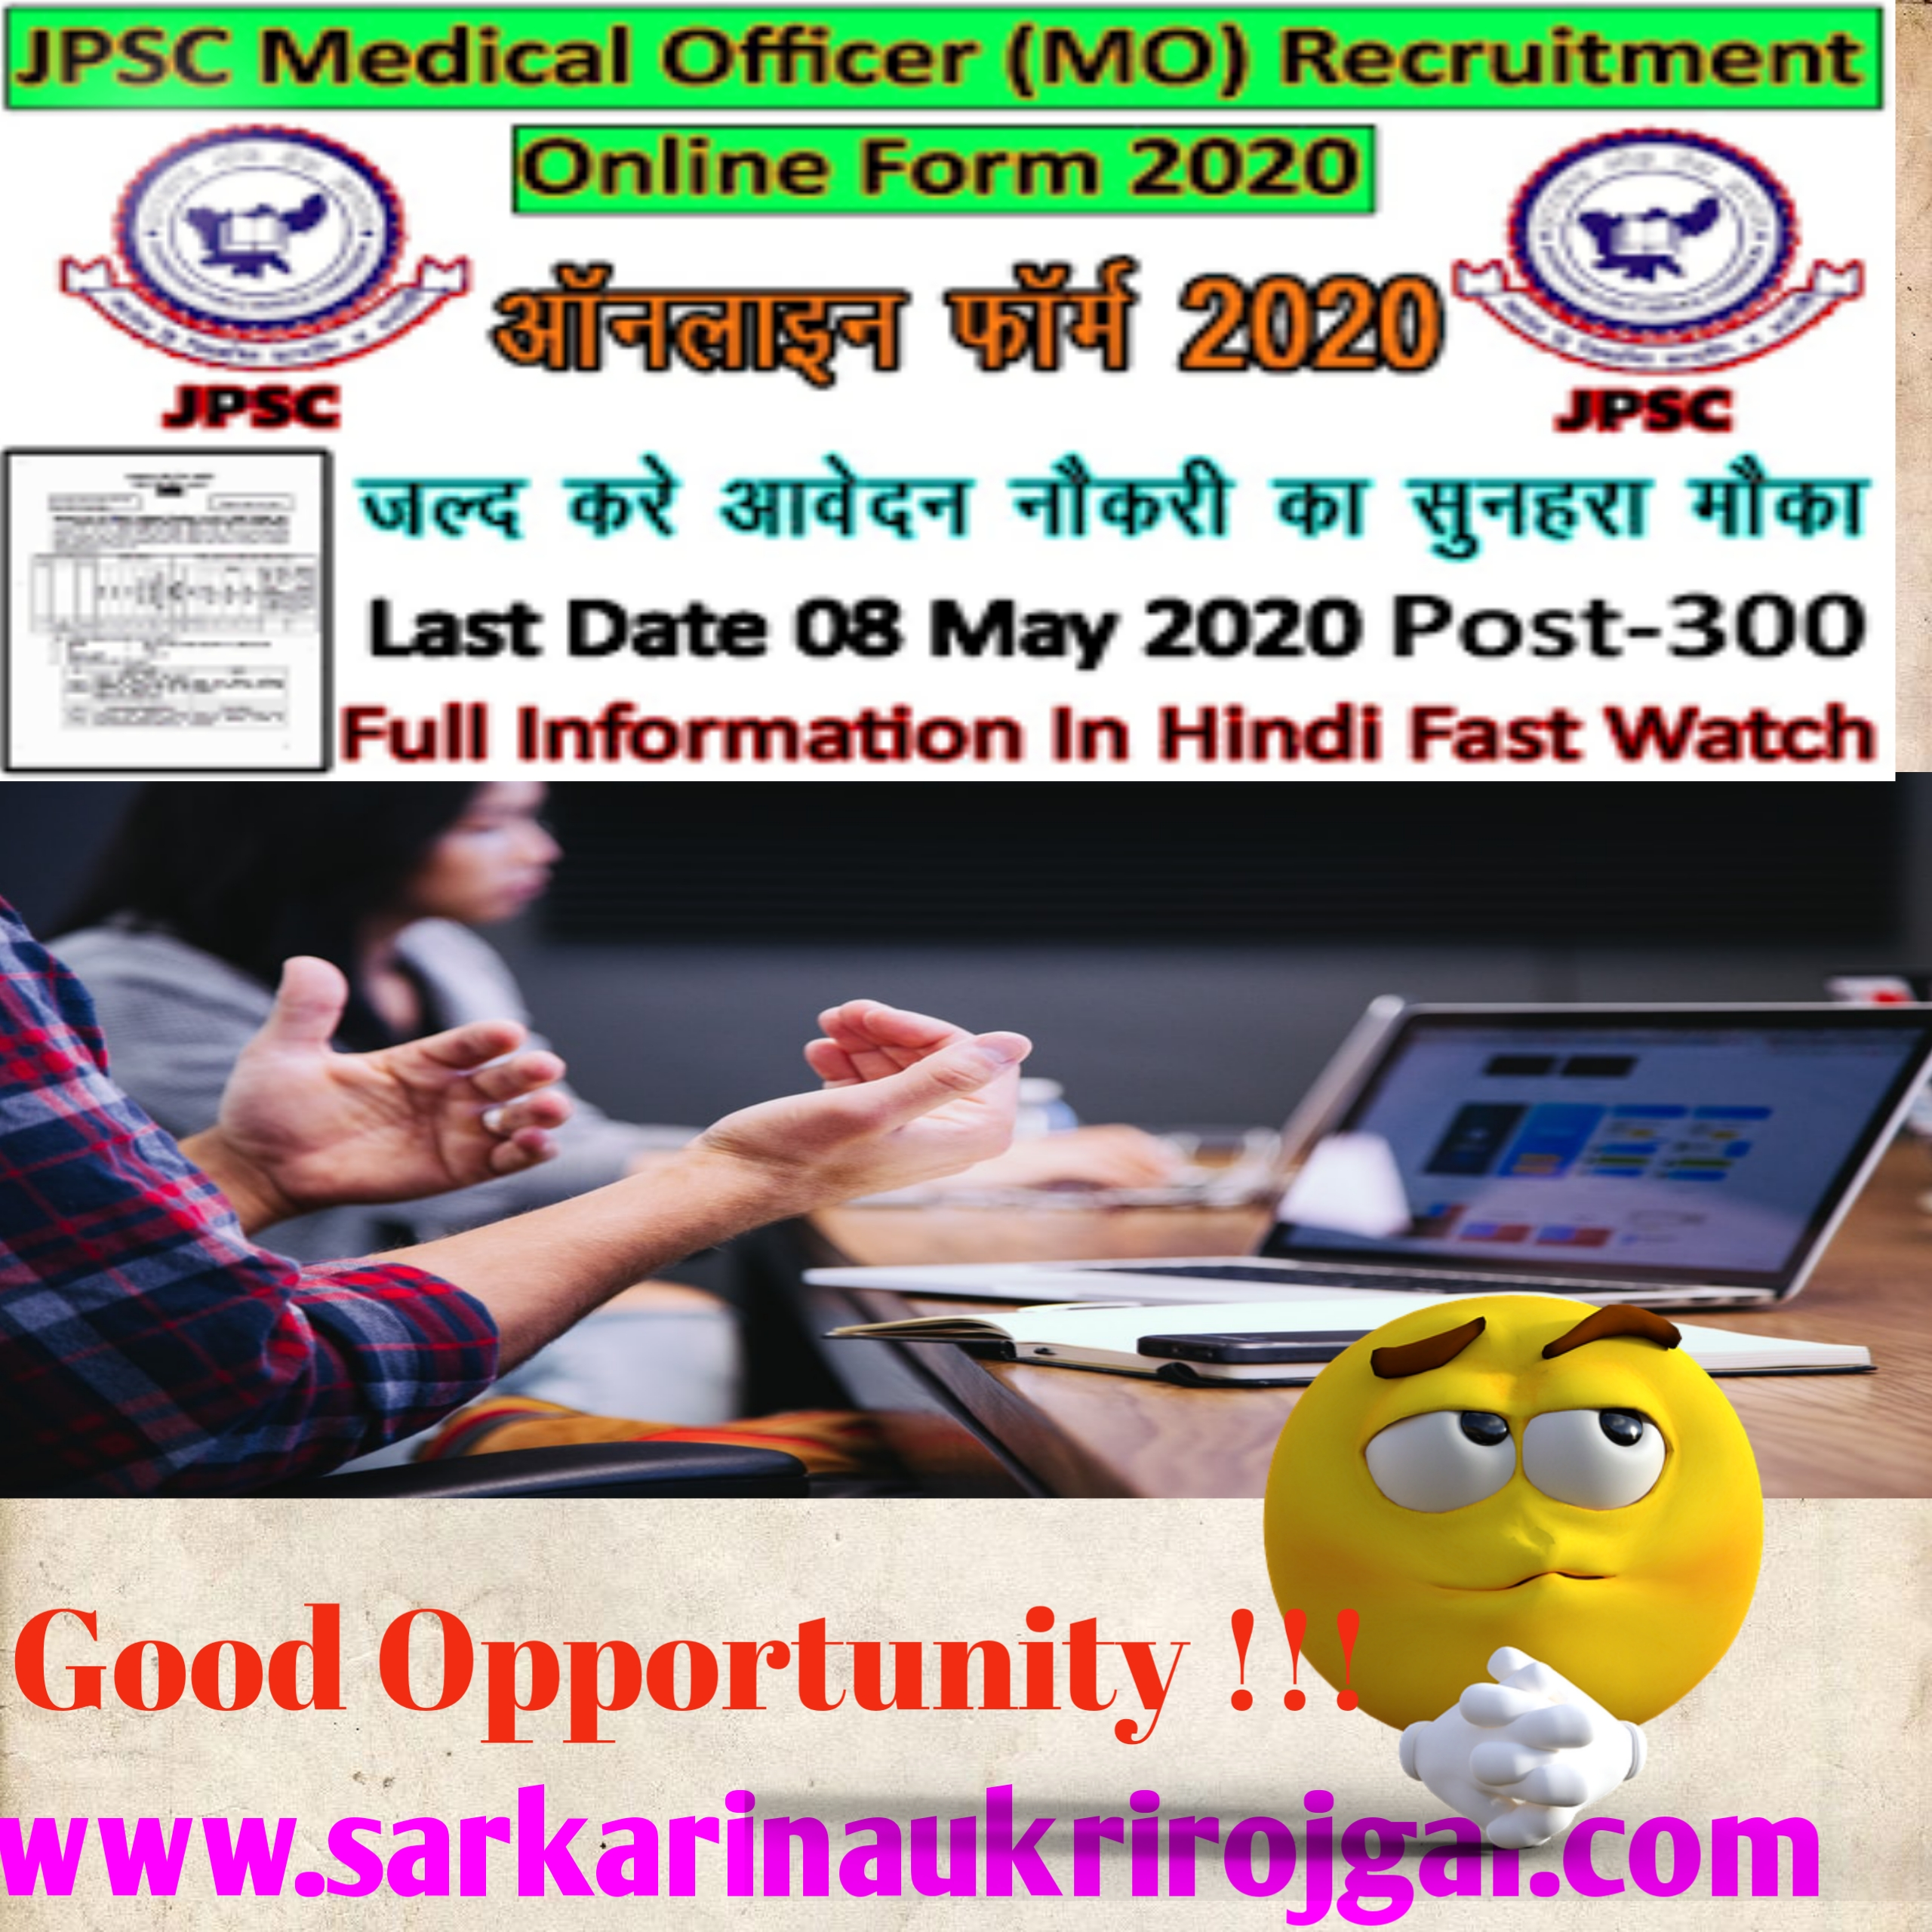 JPSC Medical Officer Recruitment 2020 Online Form